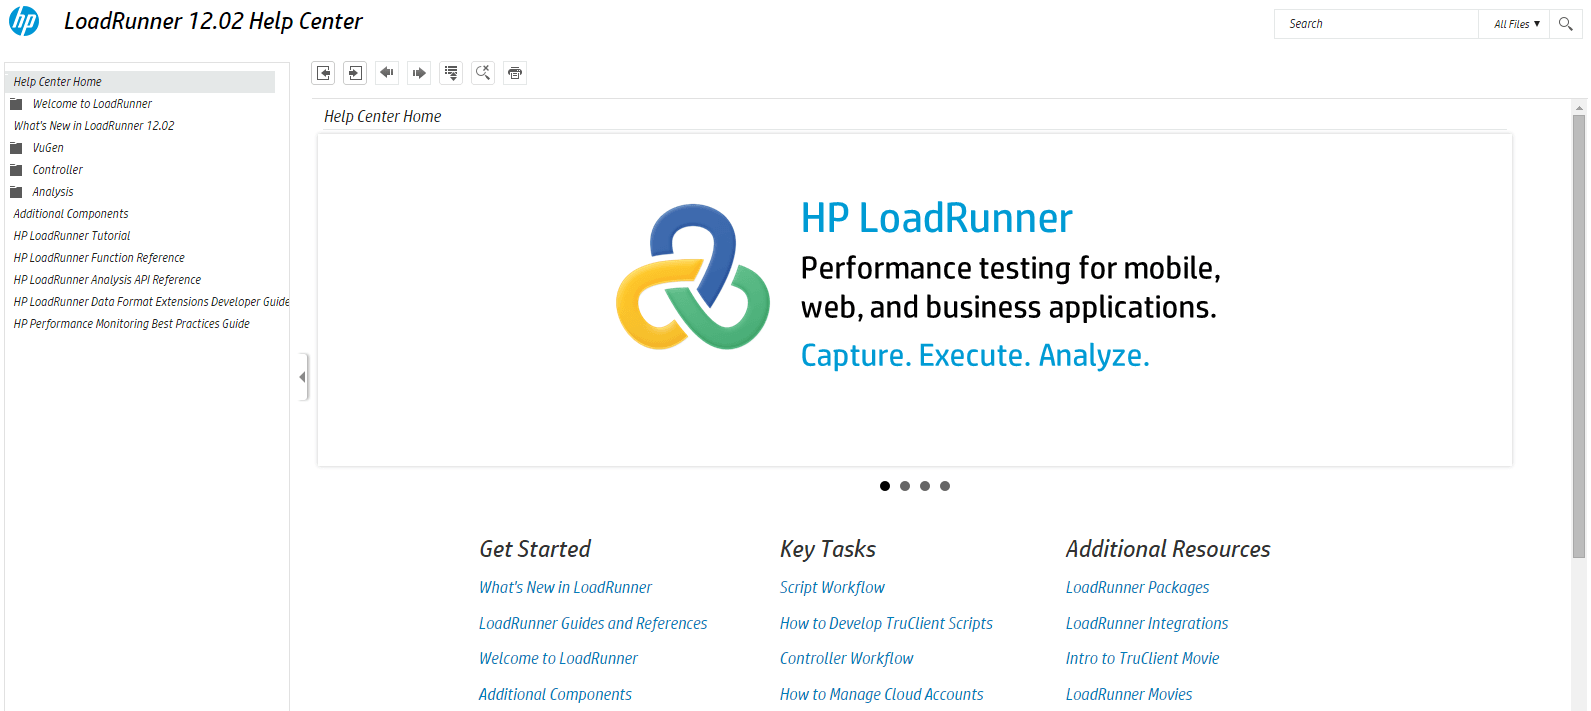 HP LoadRunner Help Center